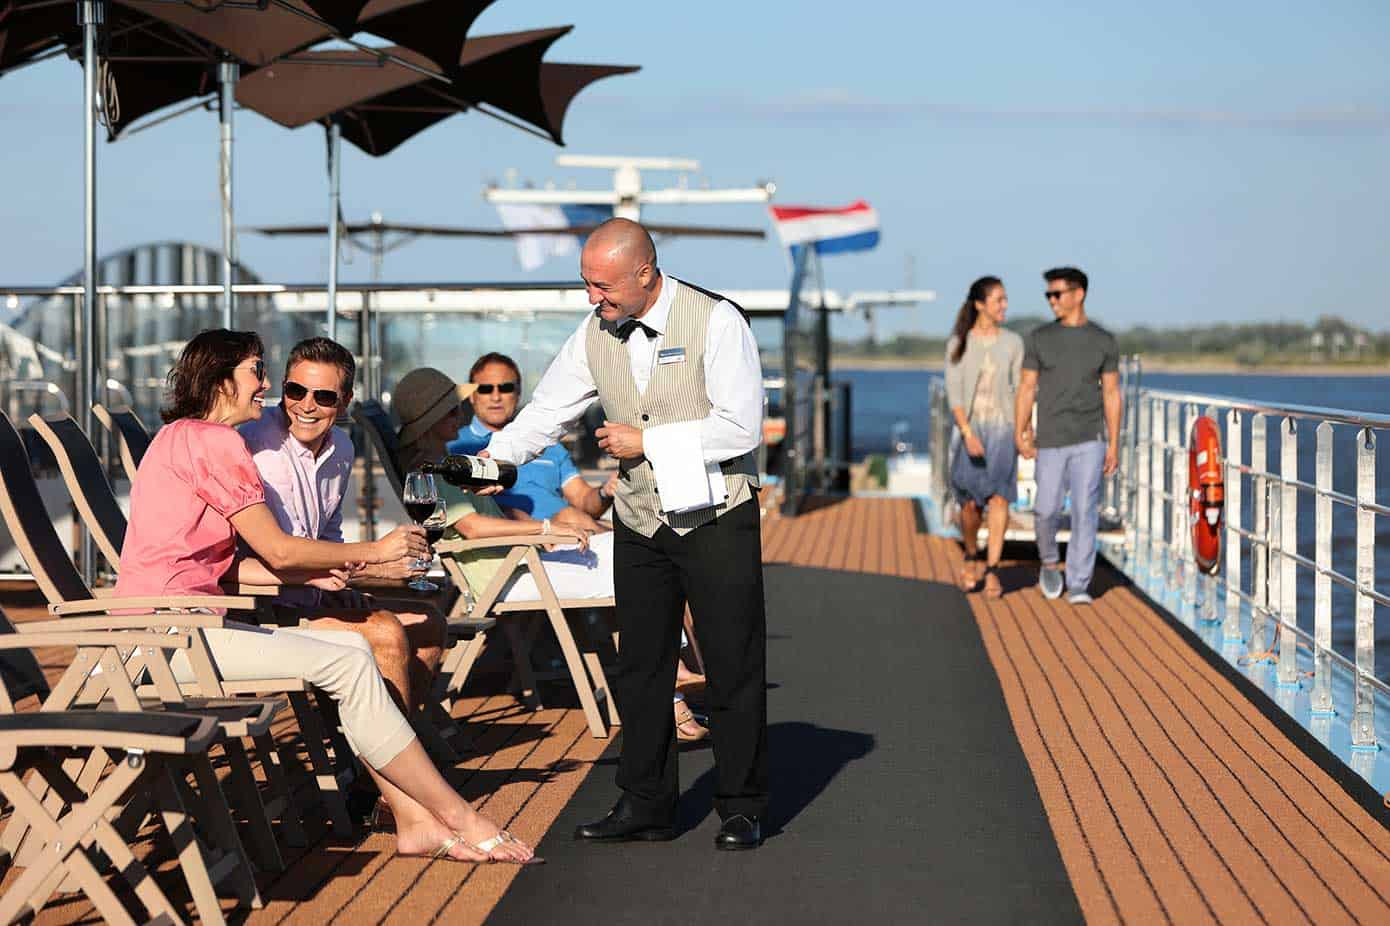 Waiter pouring a glass of wine for a couple on a river cruise ship on a sunny day.